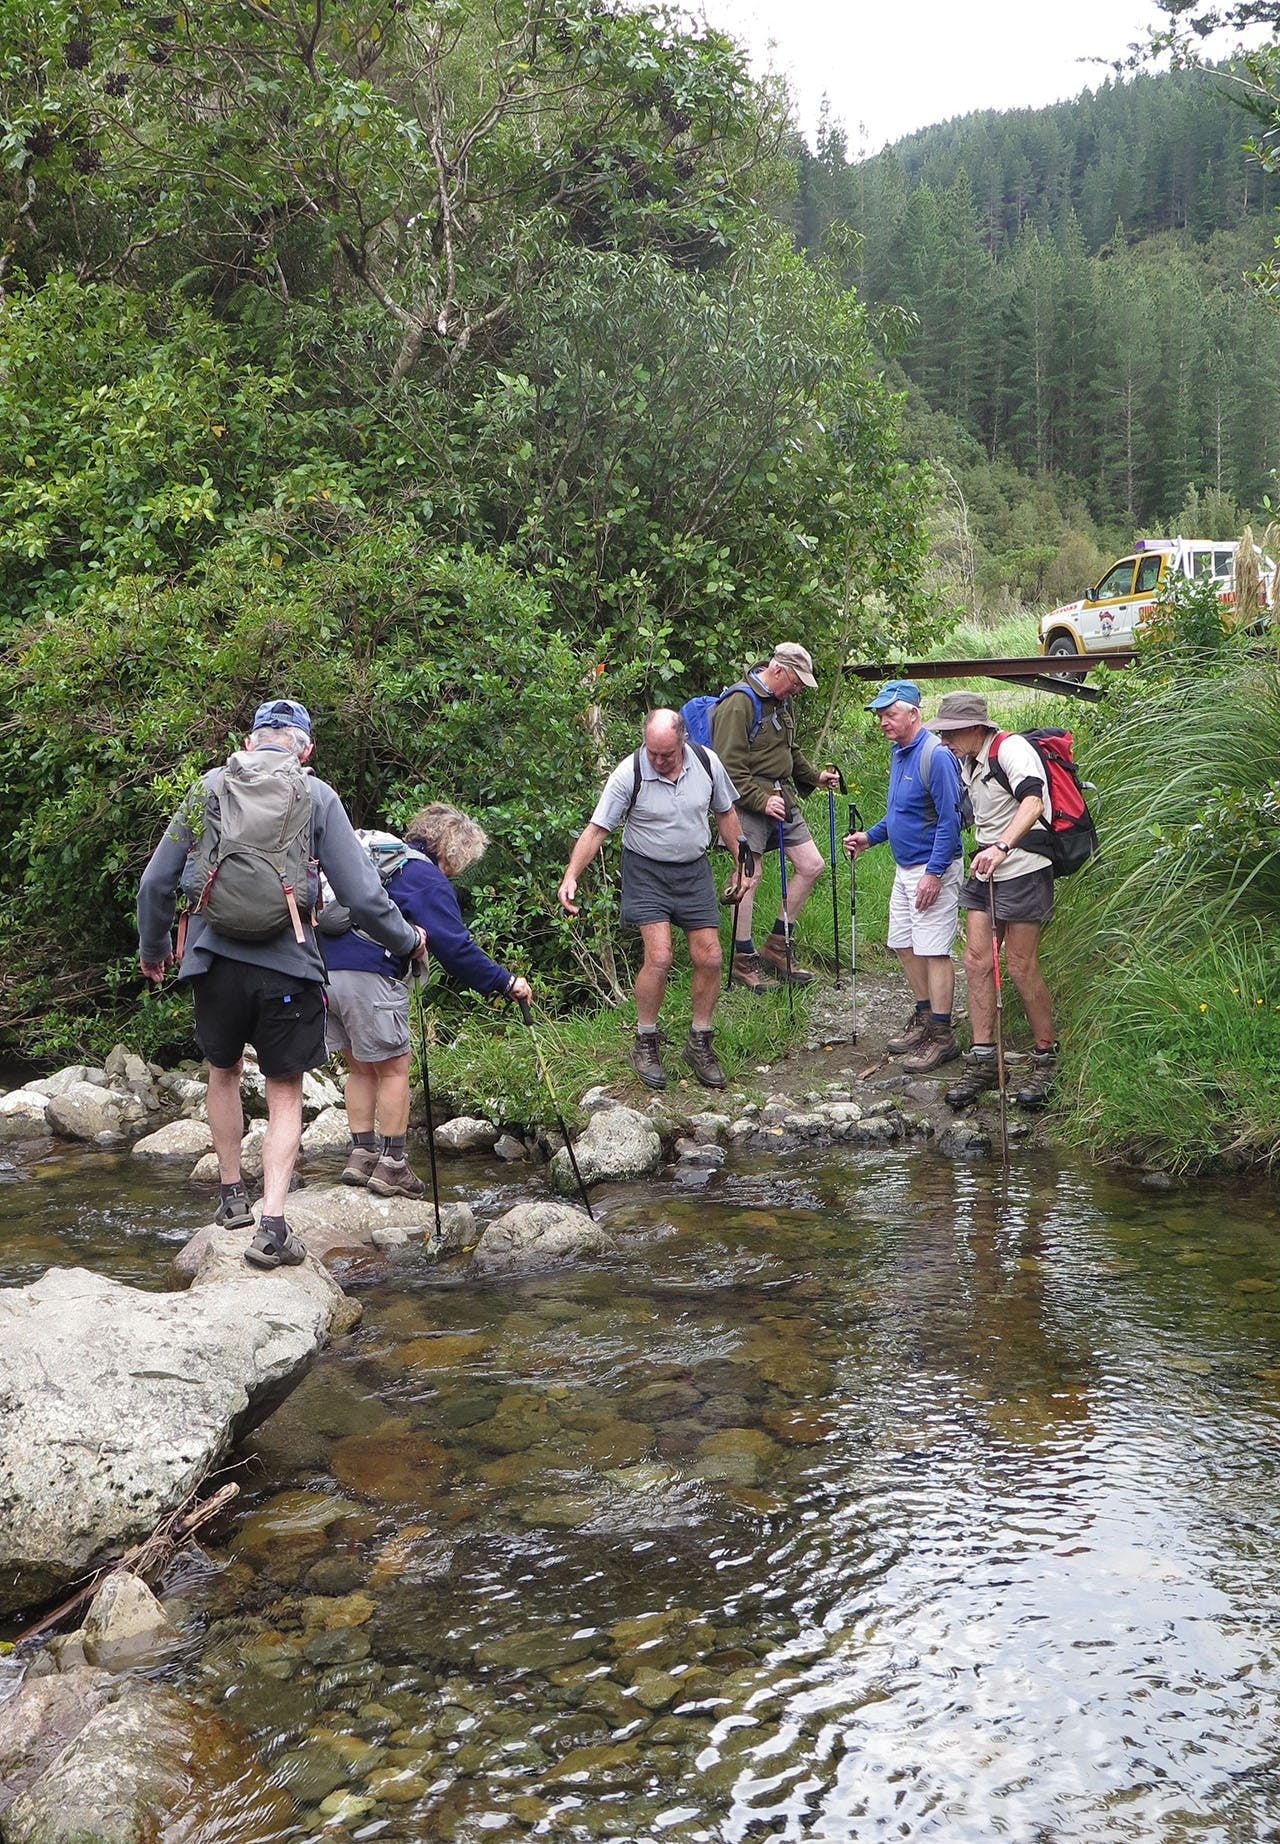 Crossing Makakahi Stream. Photo: Mike Cole